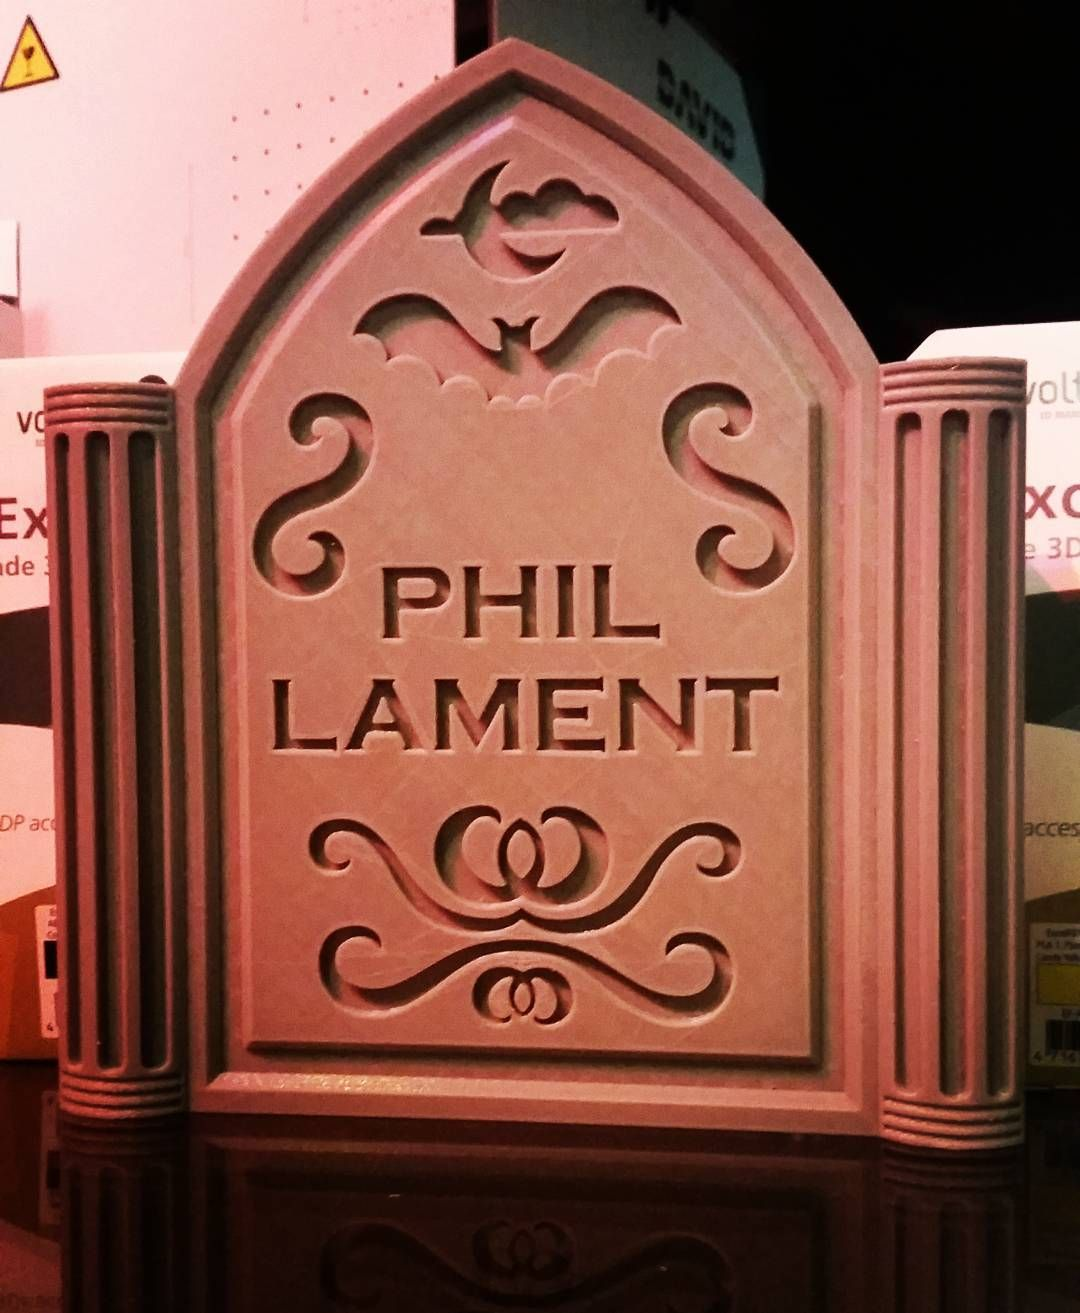 May you rest in peace mr phil lament! #rip #filament #halloween #tombstone #3dprinterfilament #3dprint #3dprinting #creapy #Creatbot #pla by 3dprintersuperstore